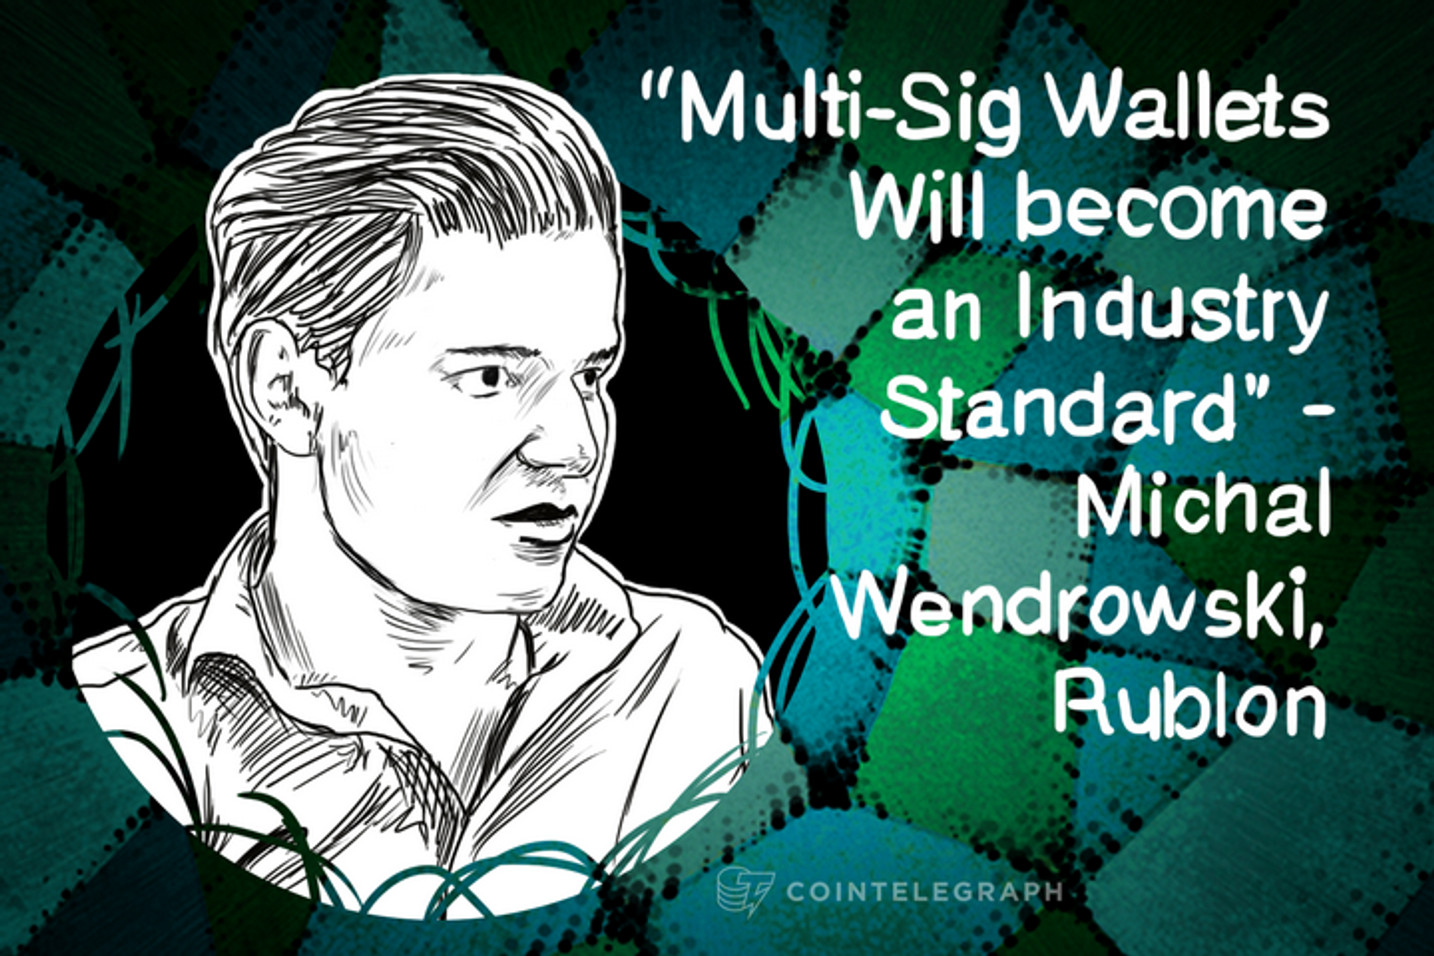 """""""Bitcoin will make the Internet much more Secure and Robust"""" - Michal Wendrowski, Rublon"""